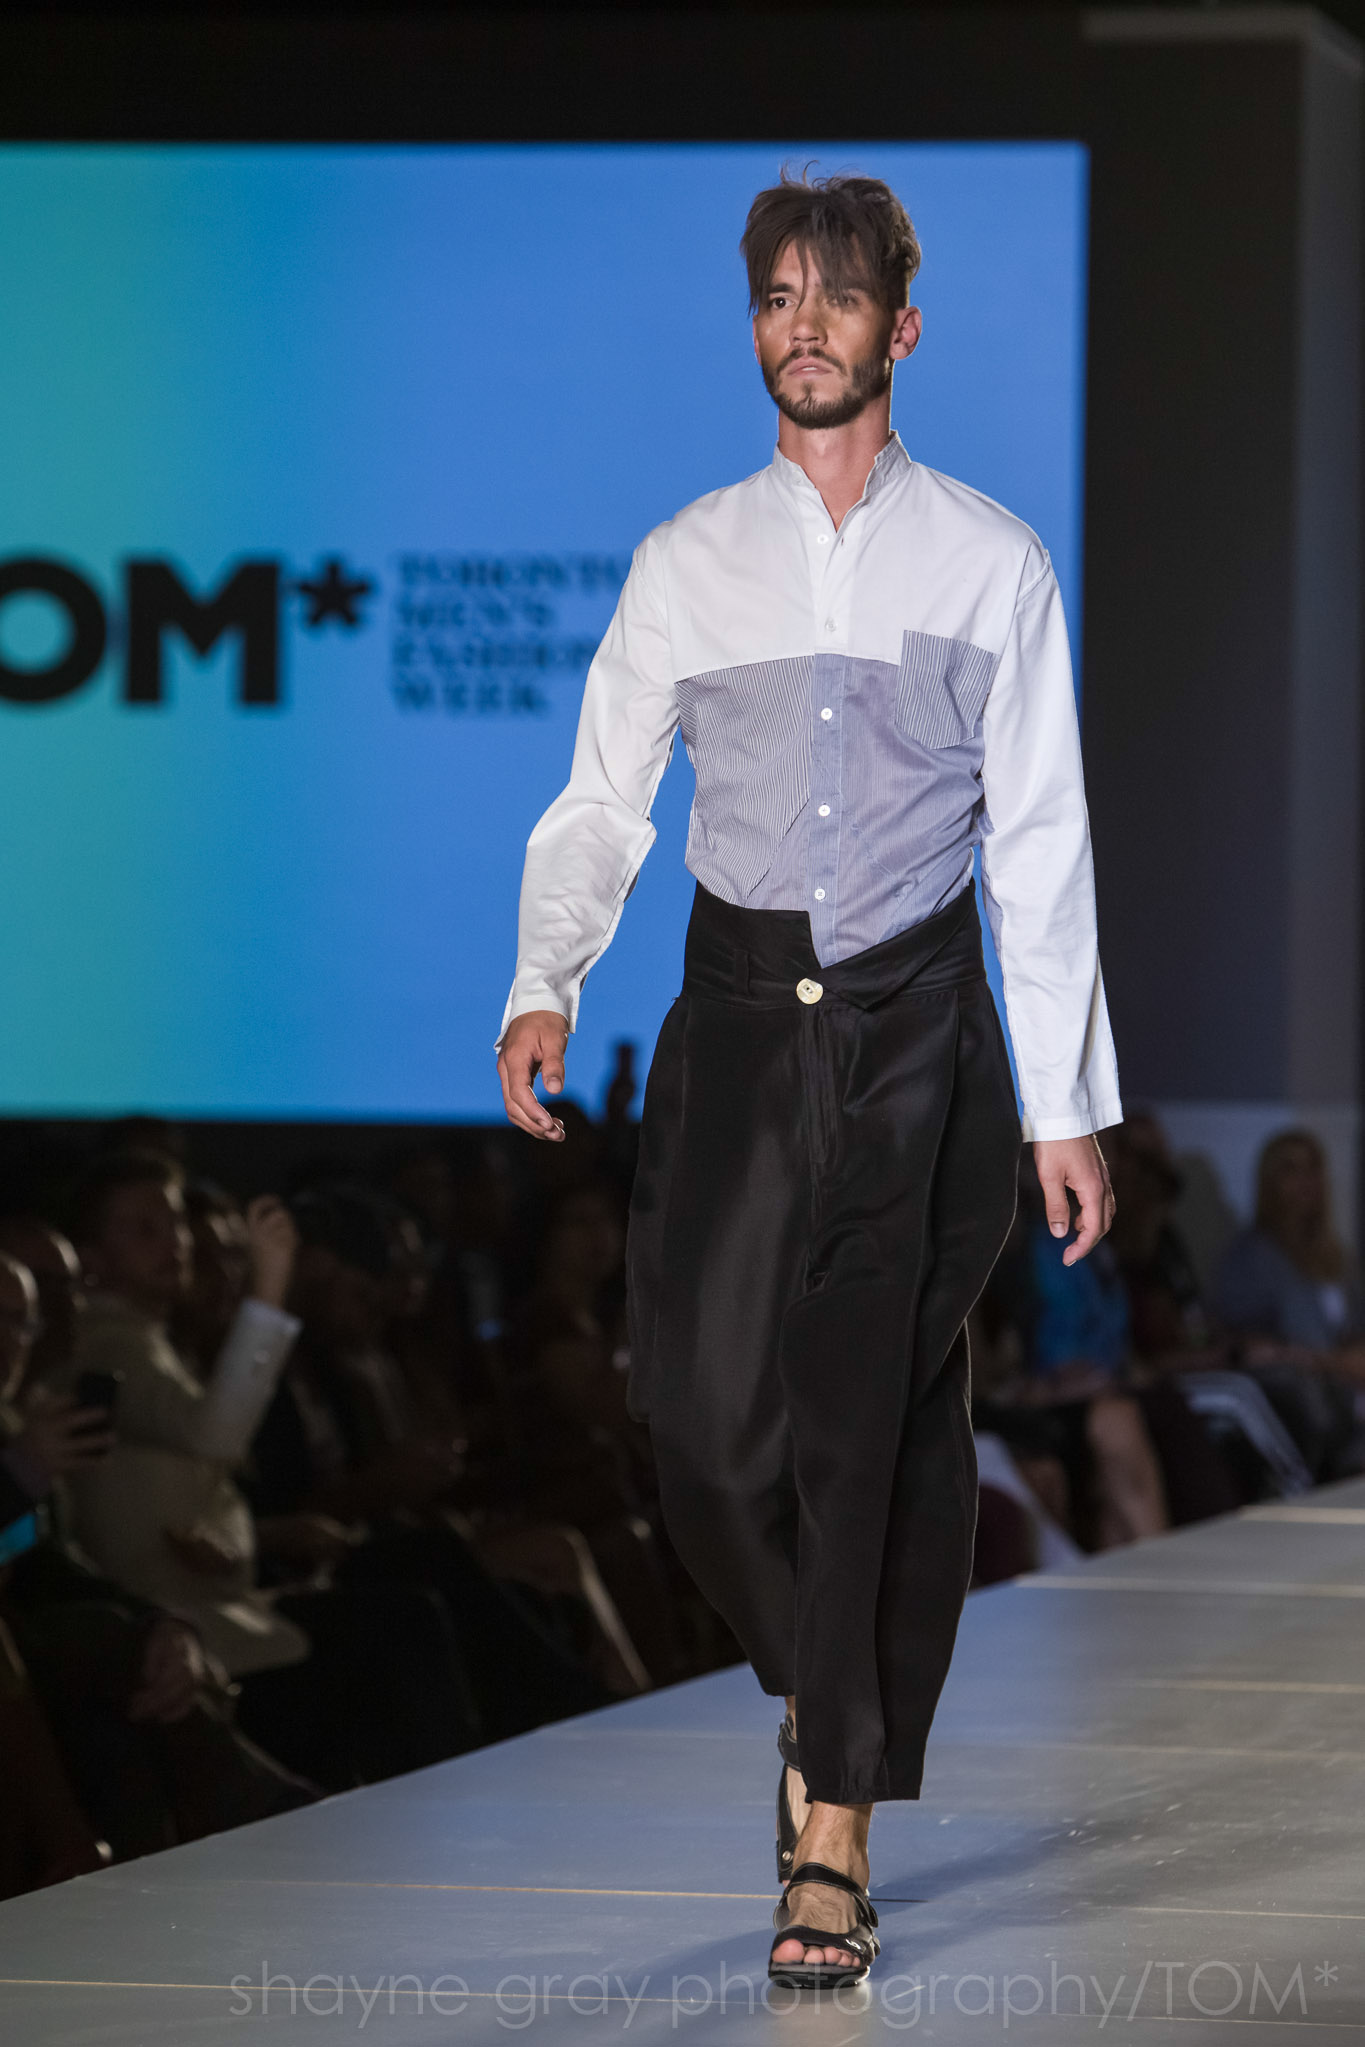 Shayne-Gray-Toronto-men's-fashion_week-TOM-jose-duran-7748.jpg